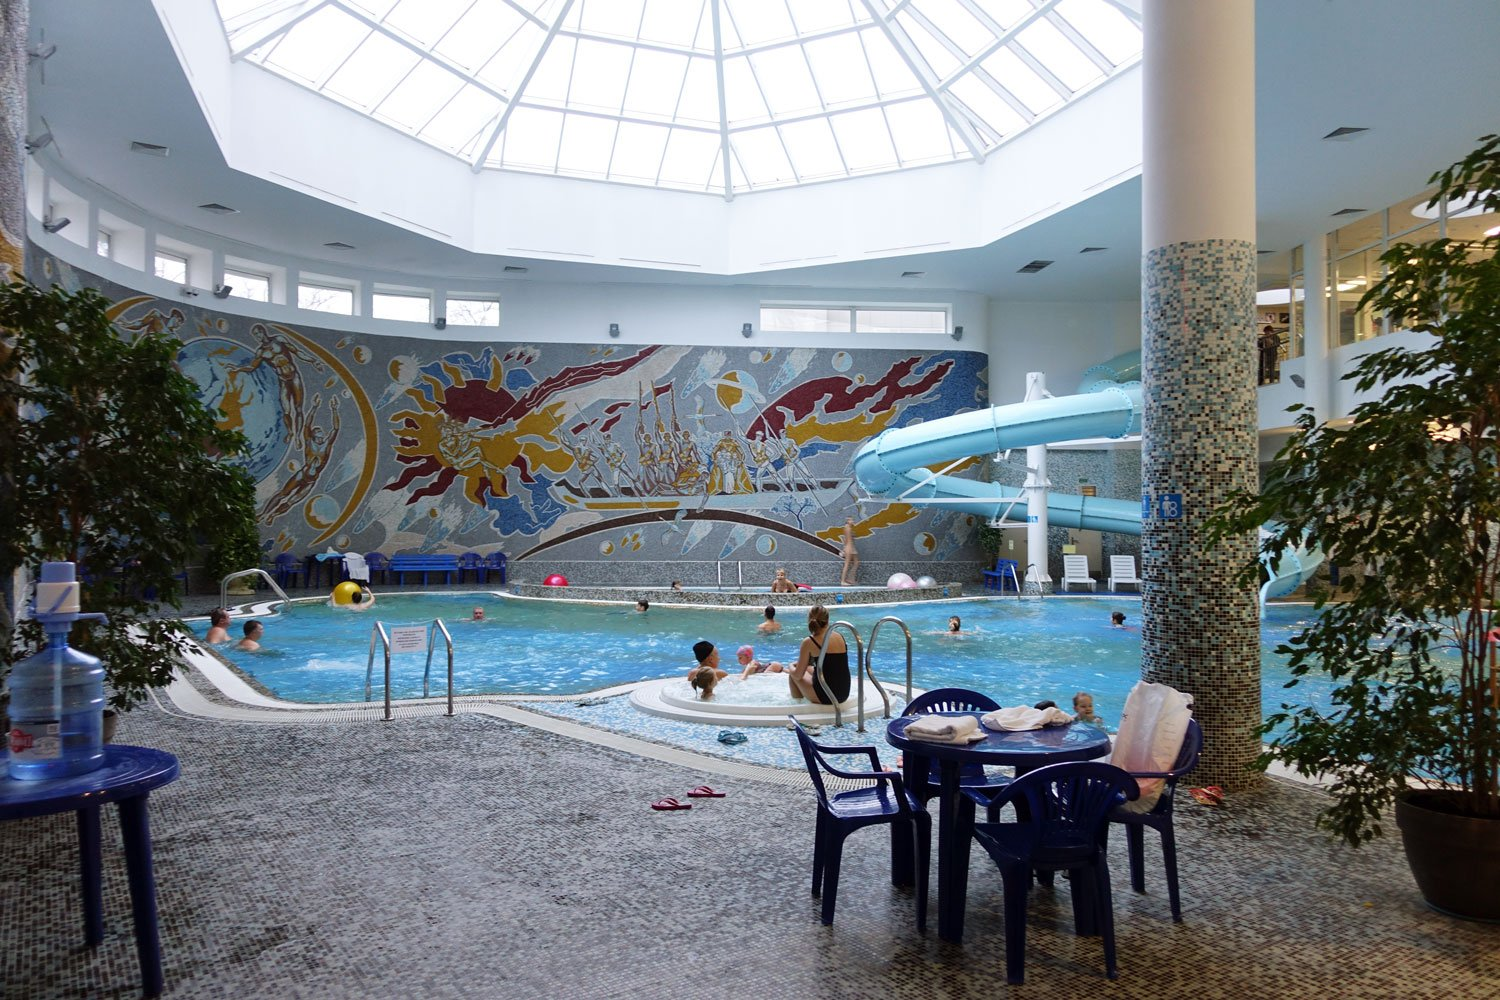 belarus hotel waterpark with pool and water slide